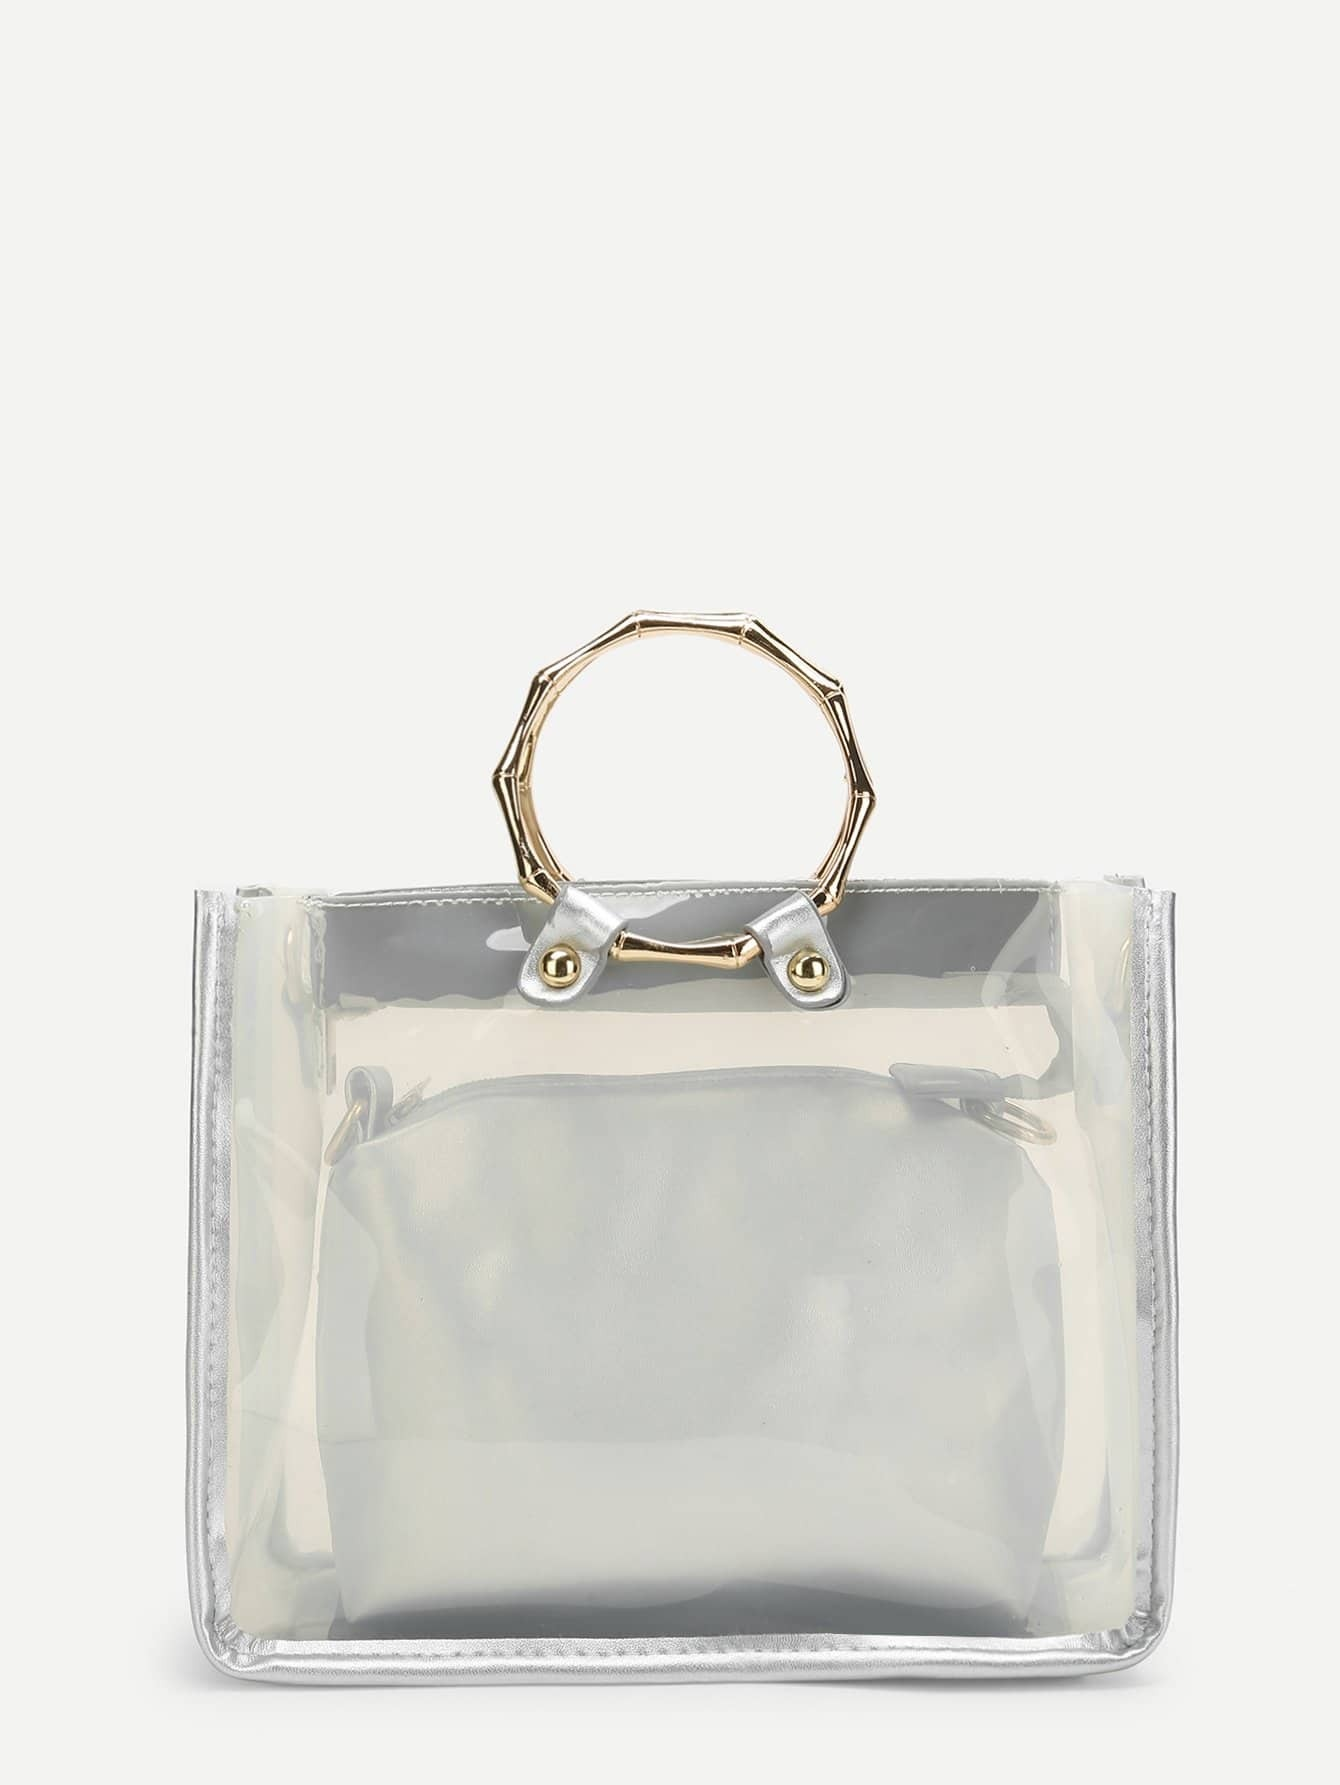 Double Handle Clear Bag With Inner Clutch transparent envelope clutch bag